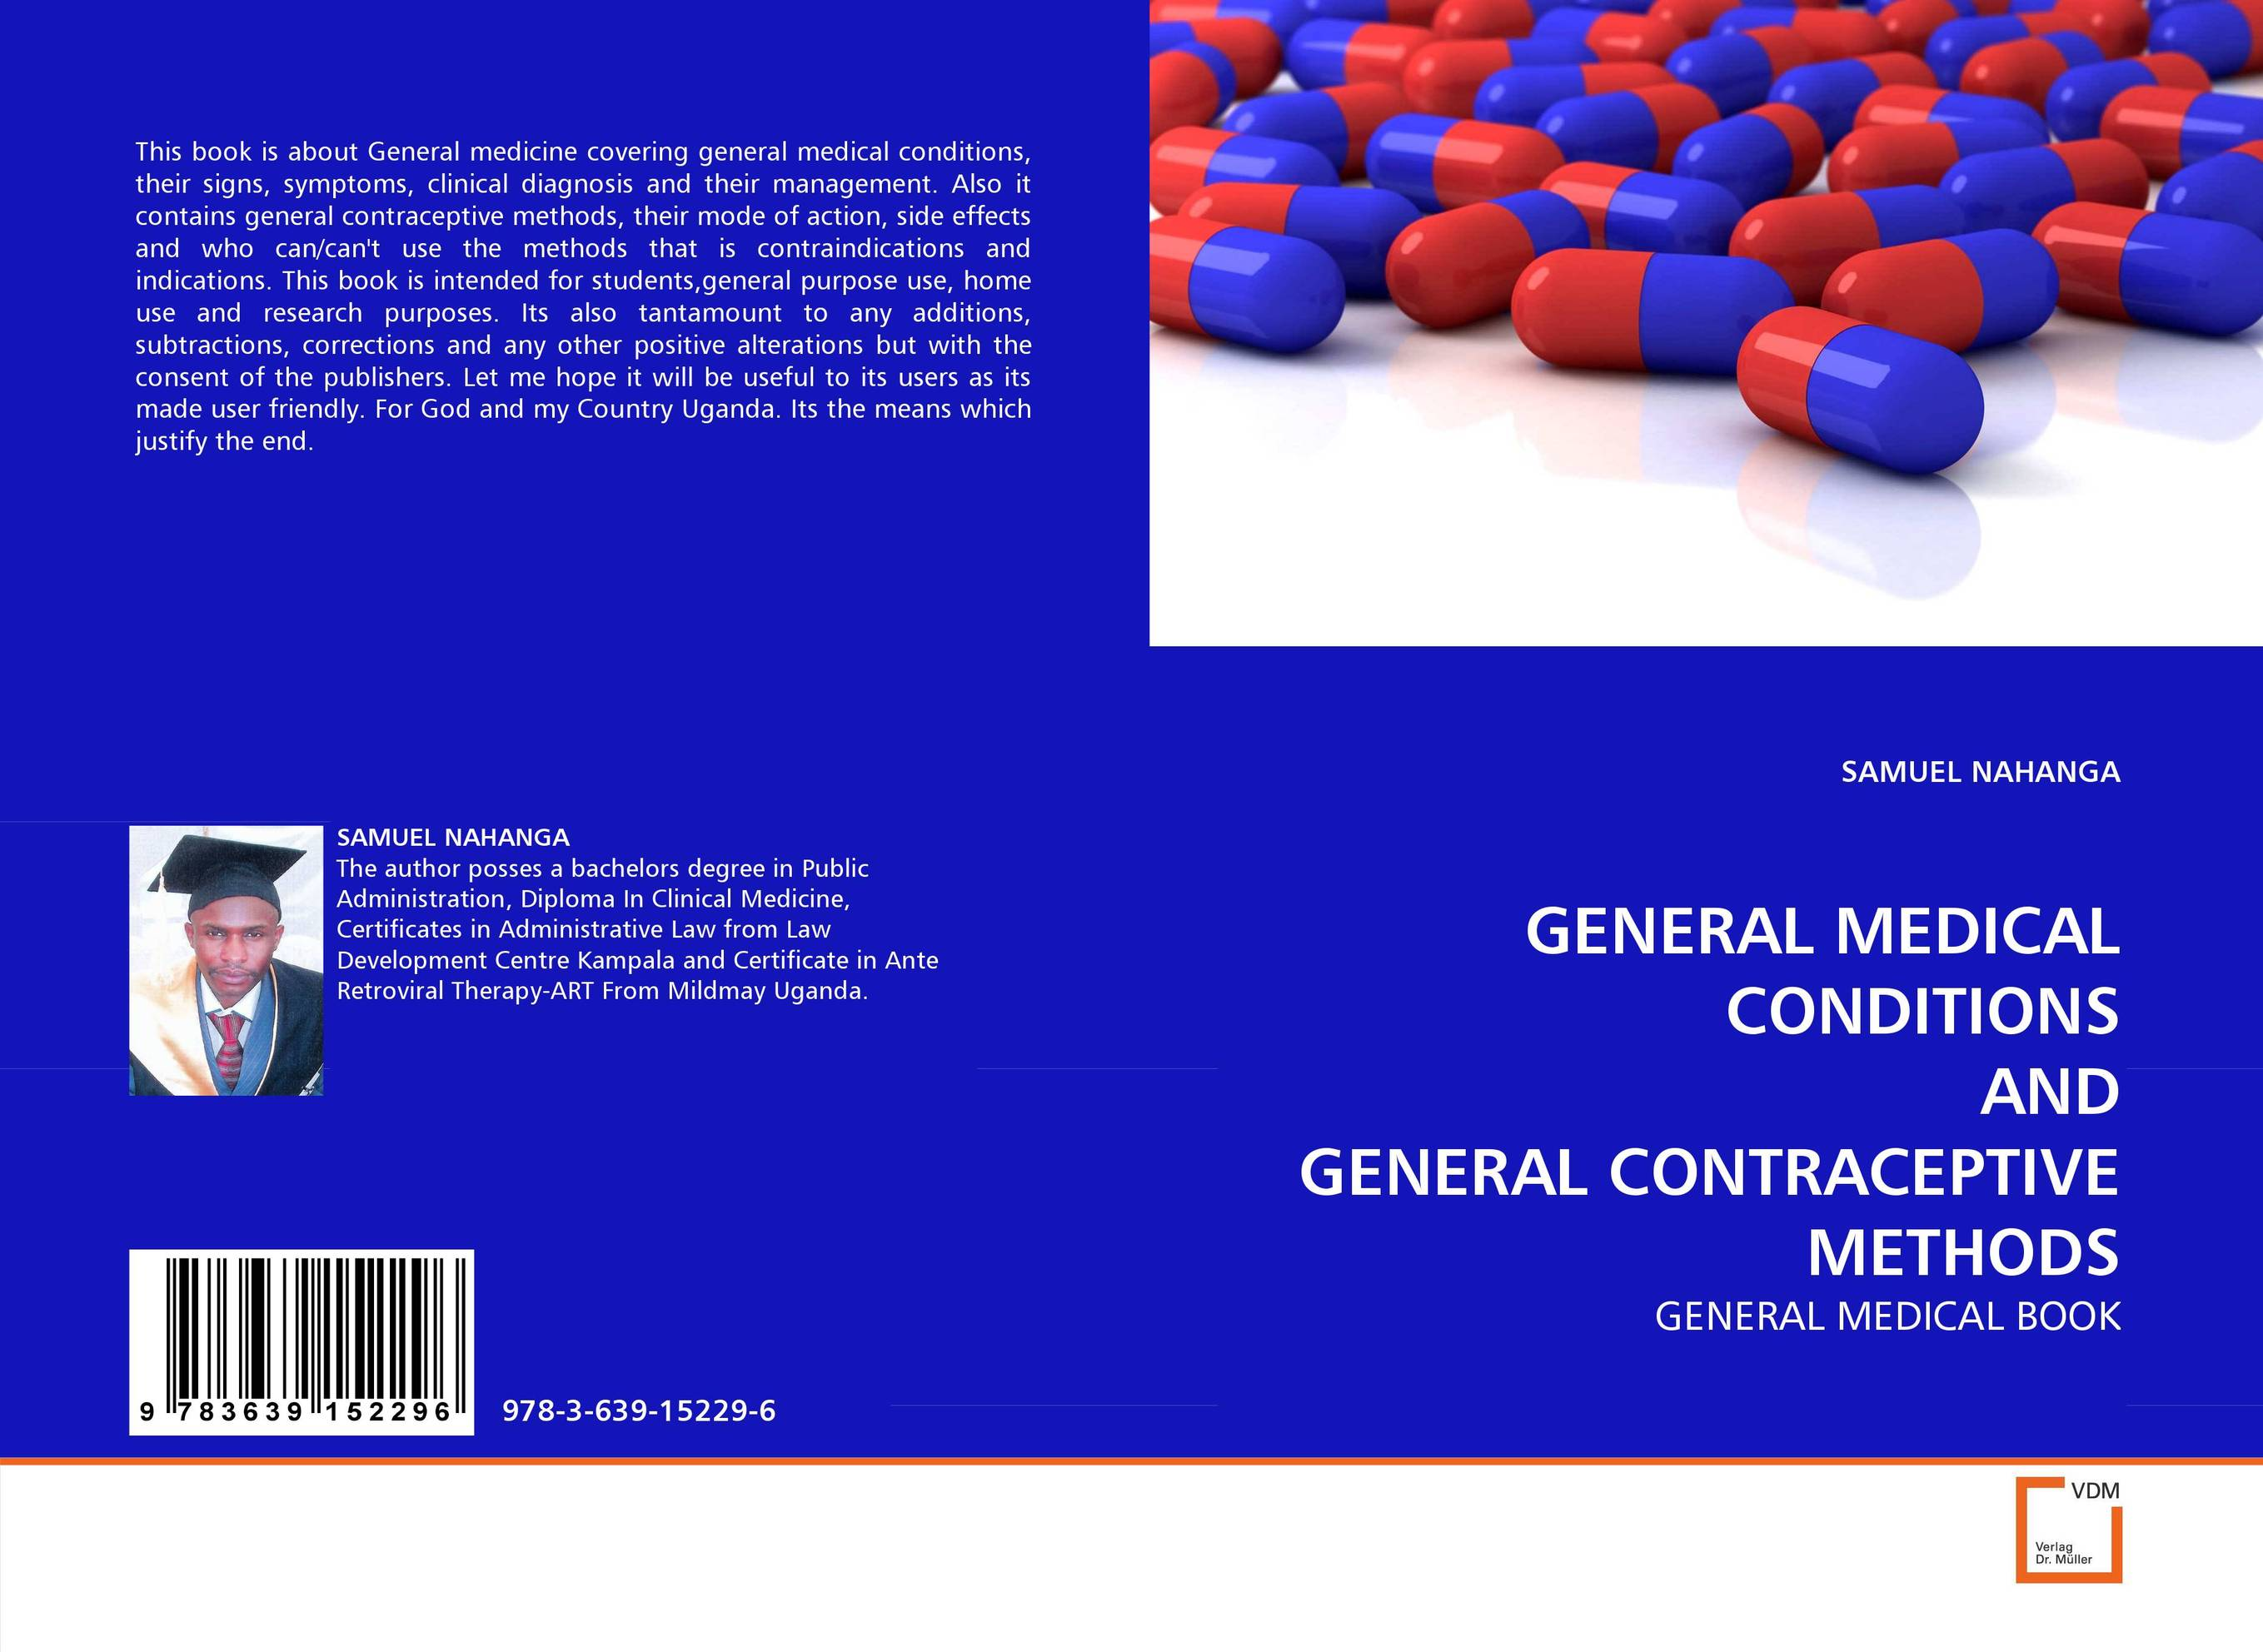 GENERAL MEDICAL CONDITIONS AND GENERAL CONTRACEPTIVE METHODS franke bibliotheca cardiologica ballistocardiogra phy research and computer diagnosis